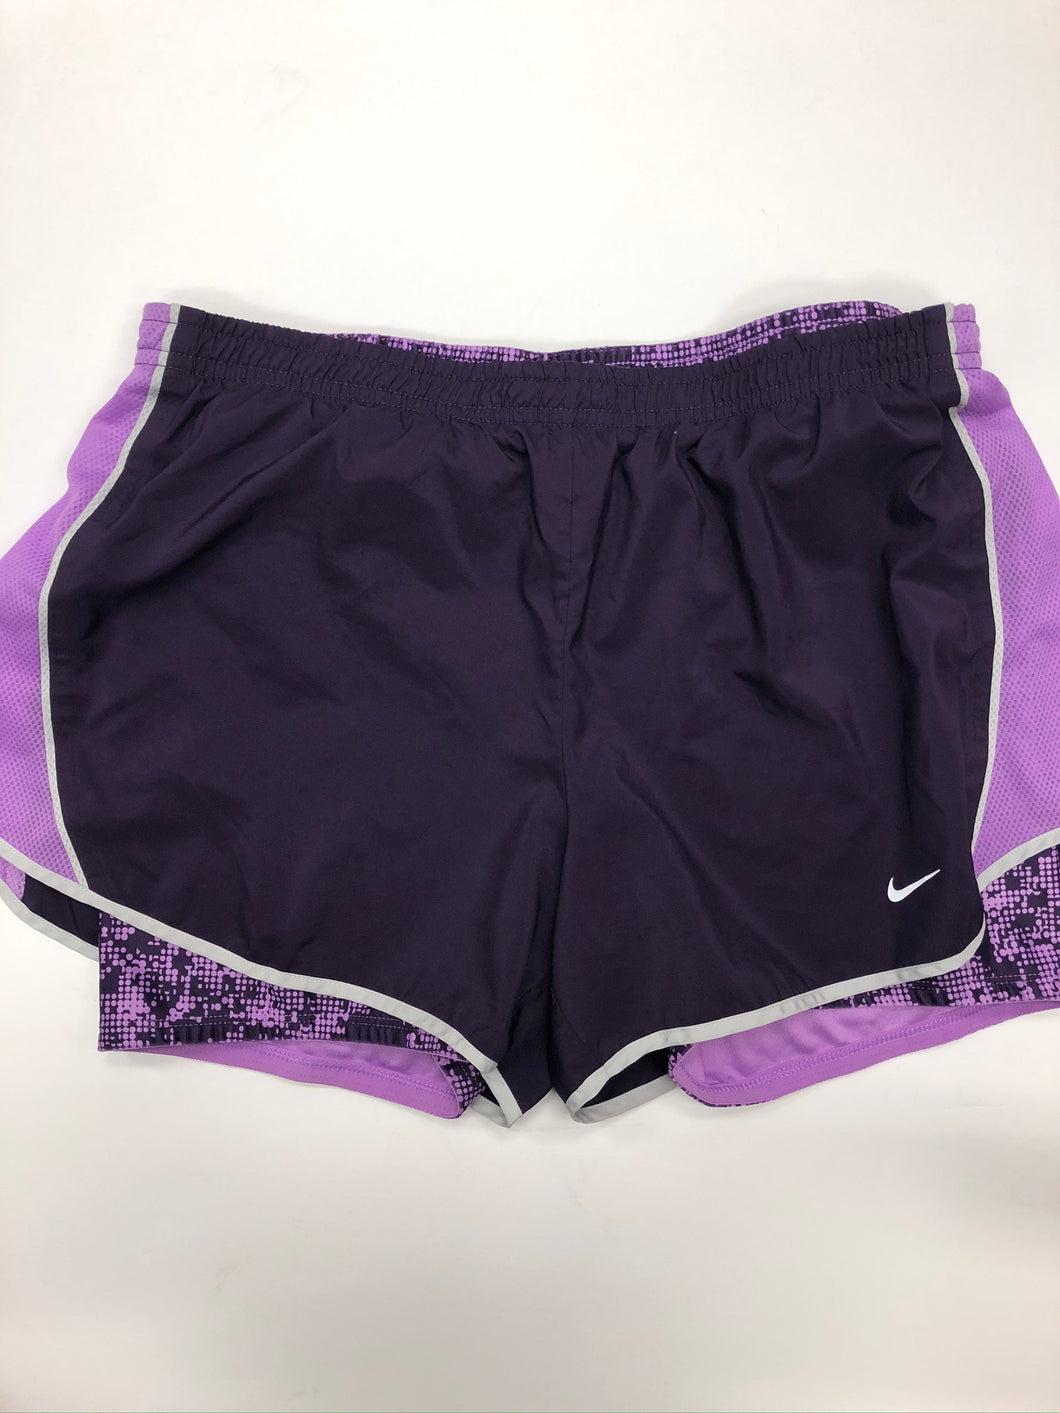 Nike Dri Fit Womens Athletic Shorts Size Large